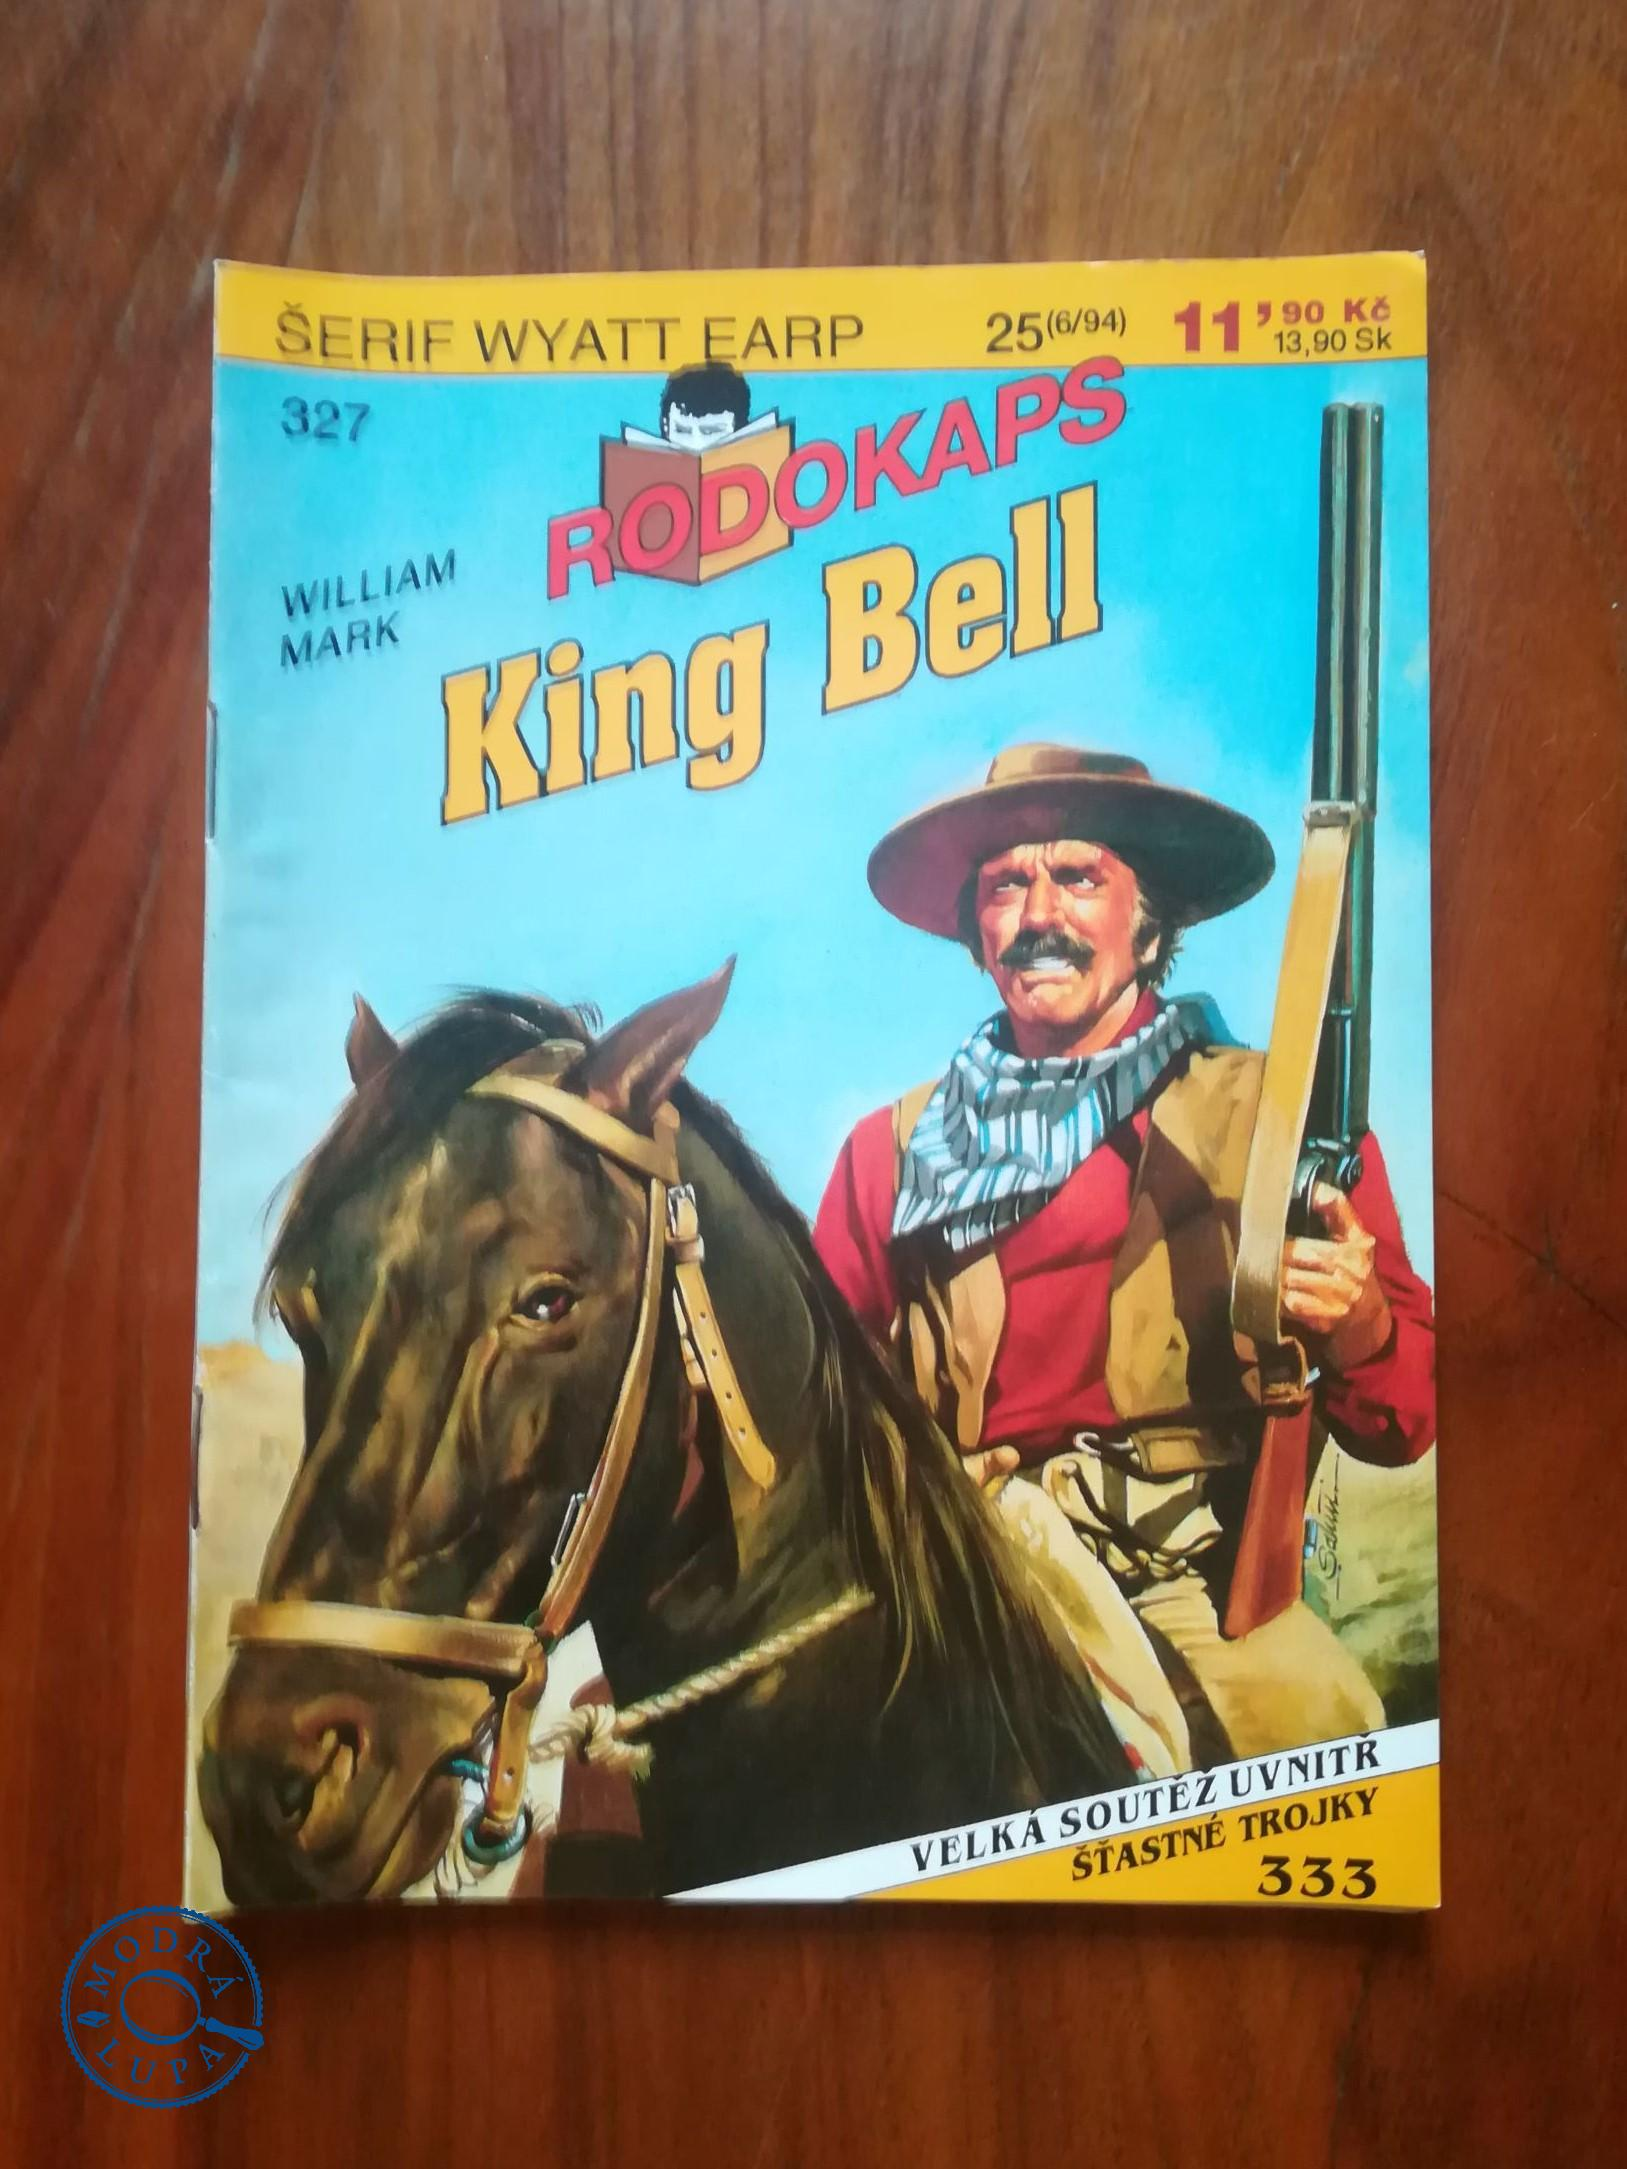 WILLIAM MARK - King Bell